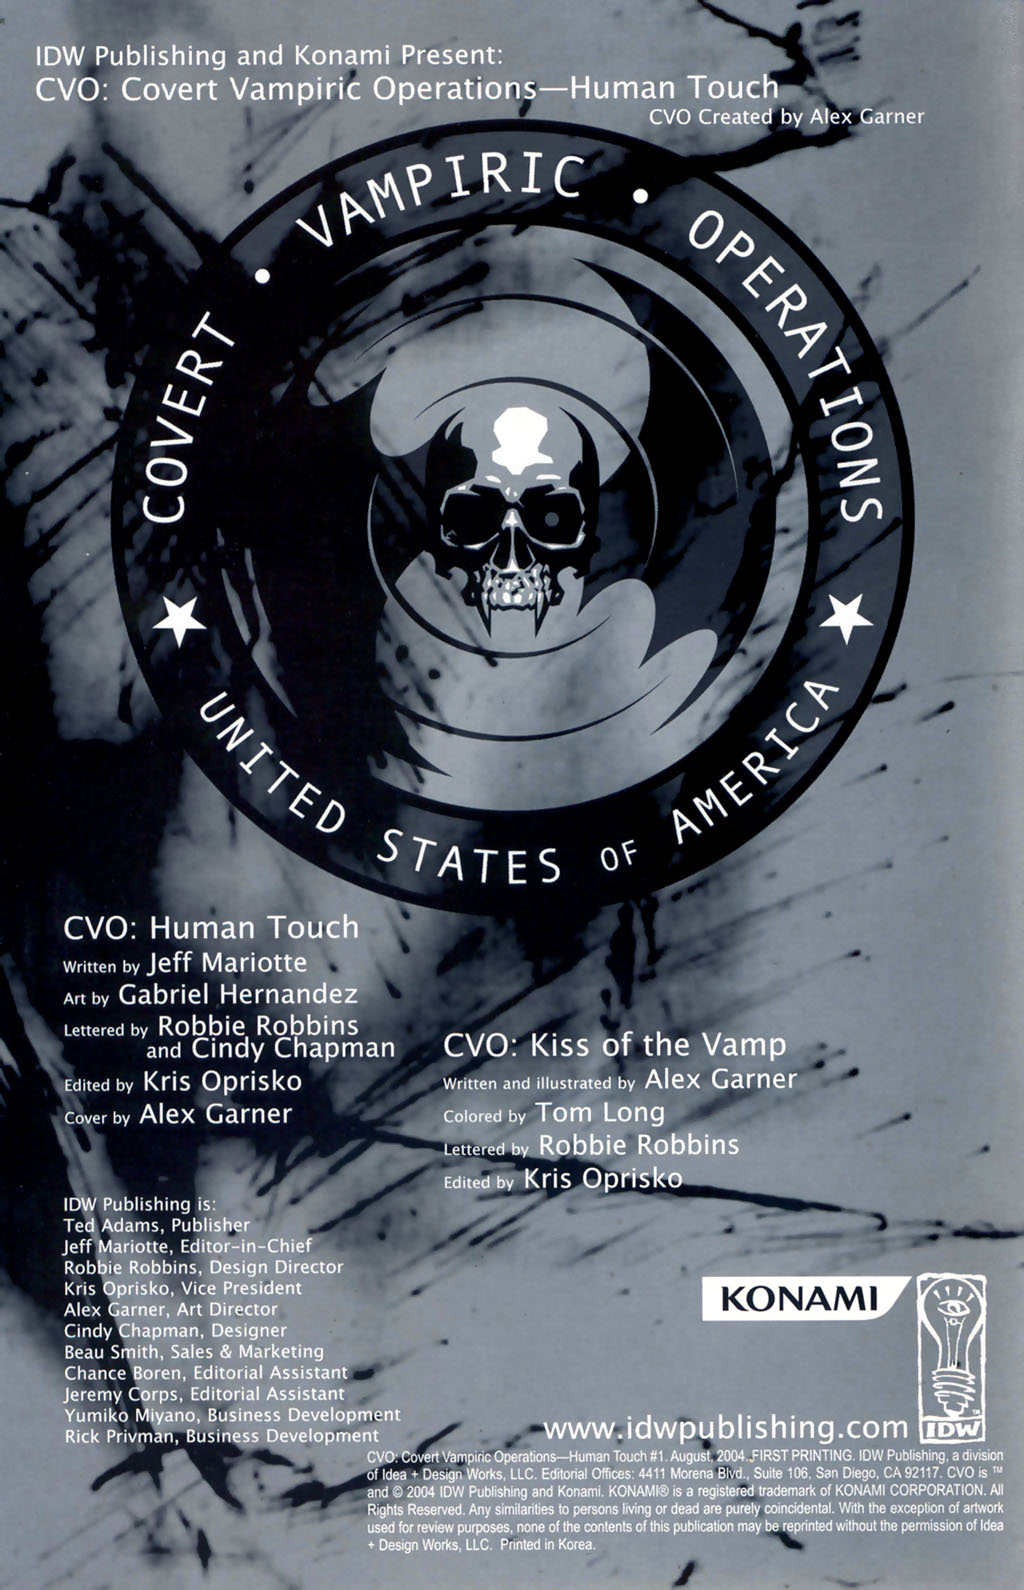 Read online CVO: Covert Vampiric Operations - Human Touch comic -  Issue # Full - 2